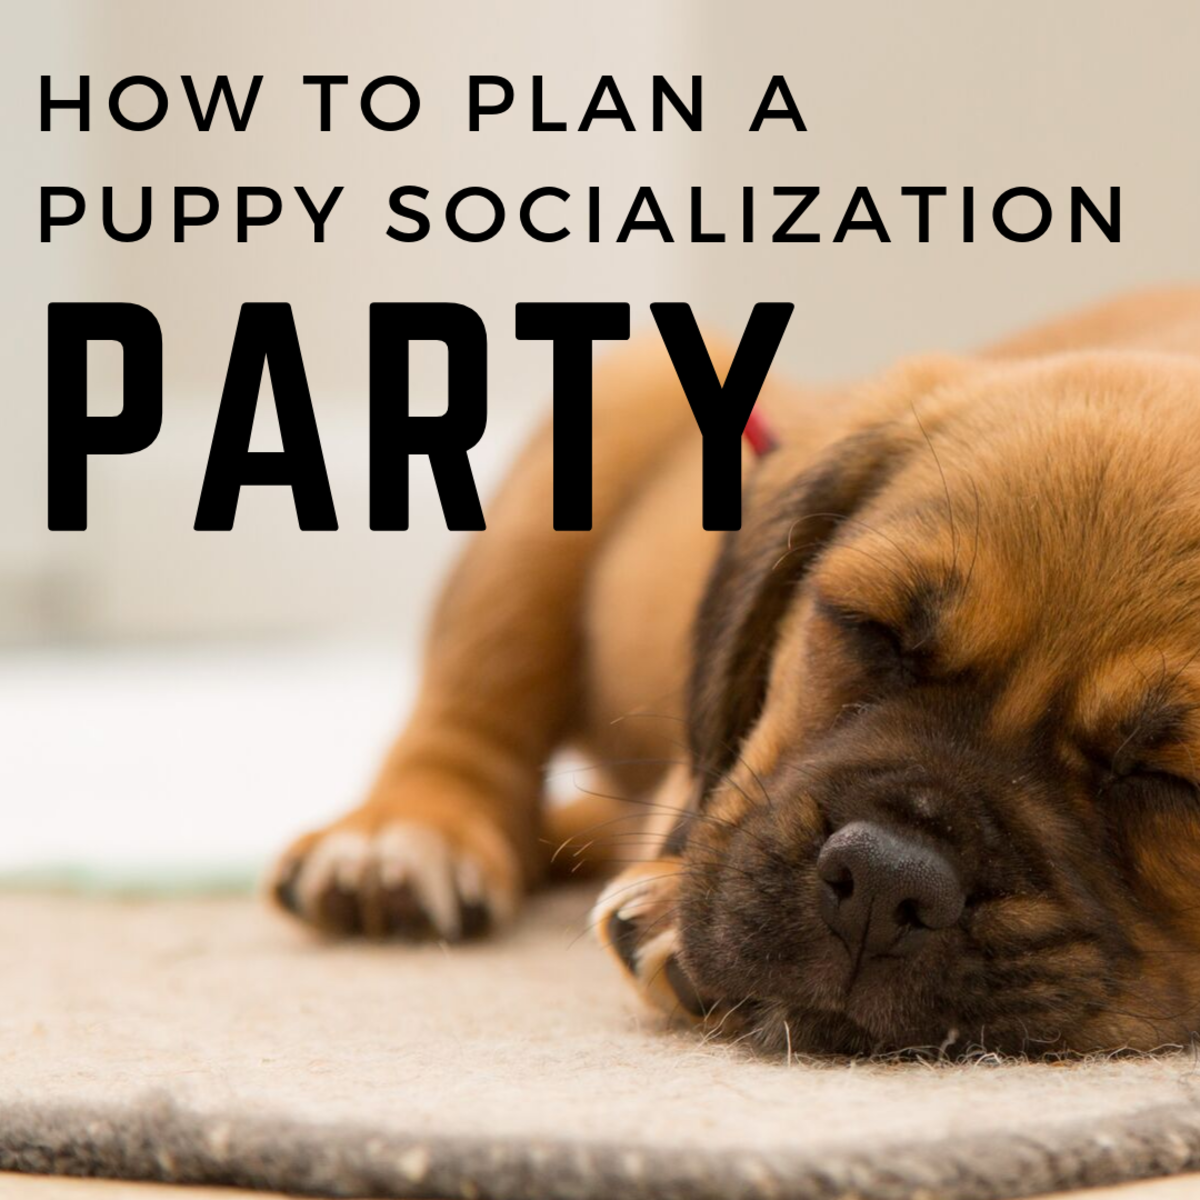 How to organize a puppy socialization party.